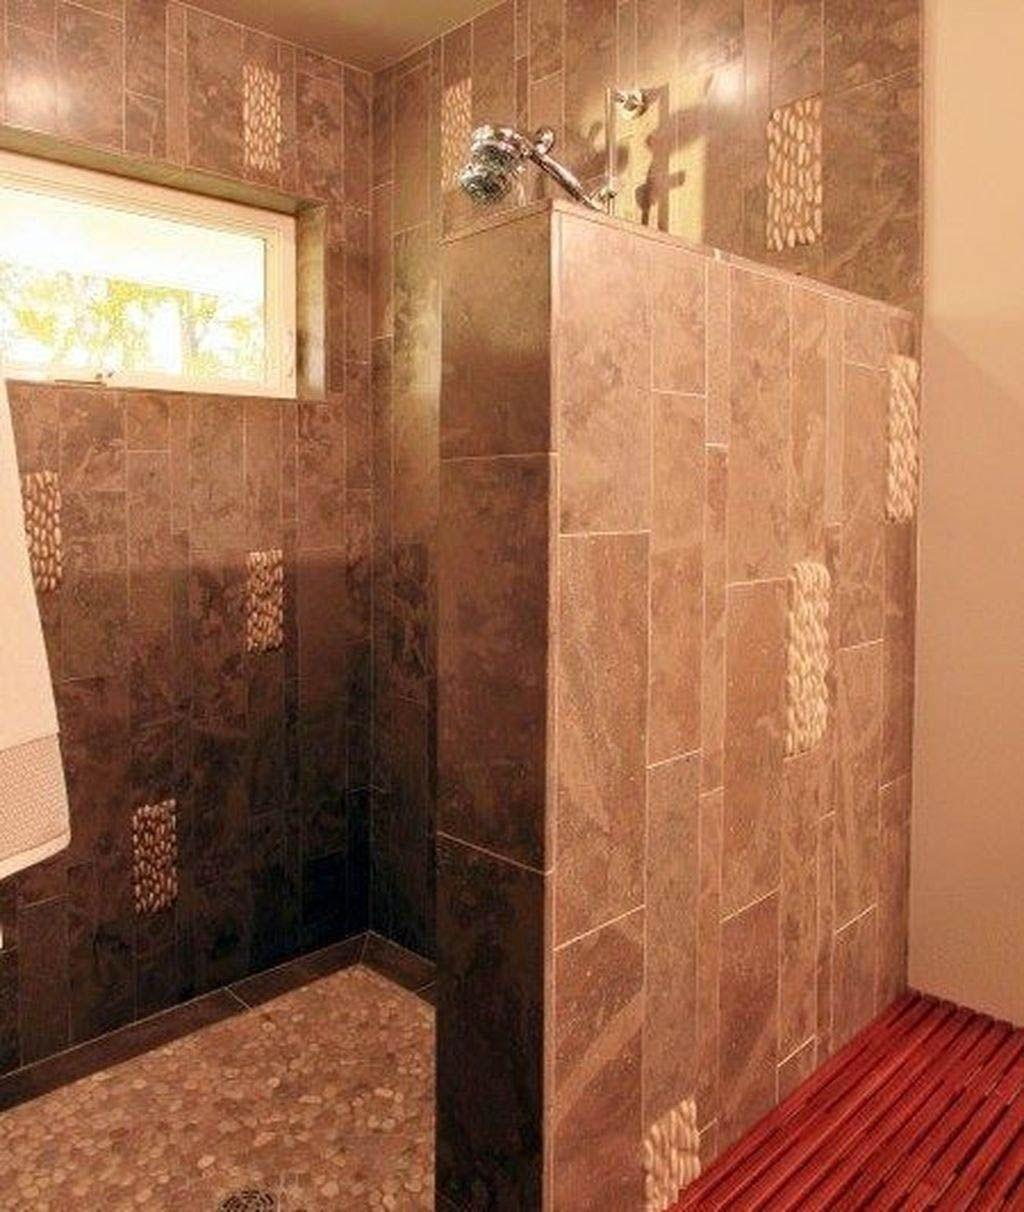 Bathroom Shower Remodel Ideas With Images Bathroom Remodel Shower Shower Remodel Small Bathroom